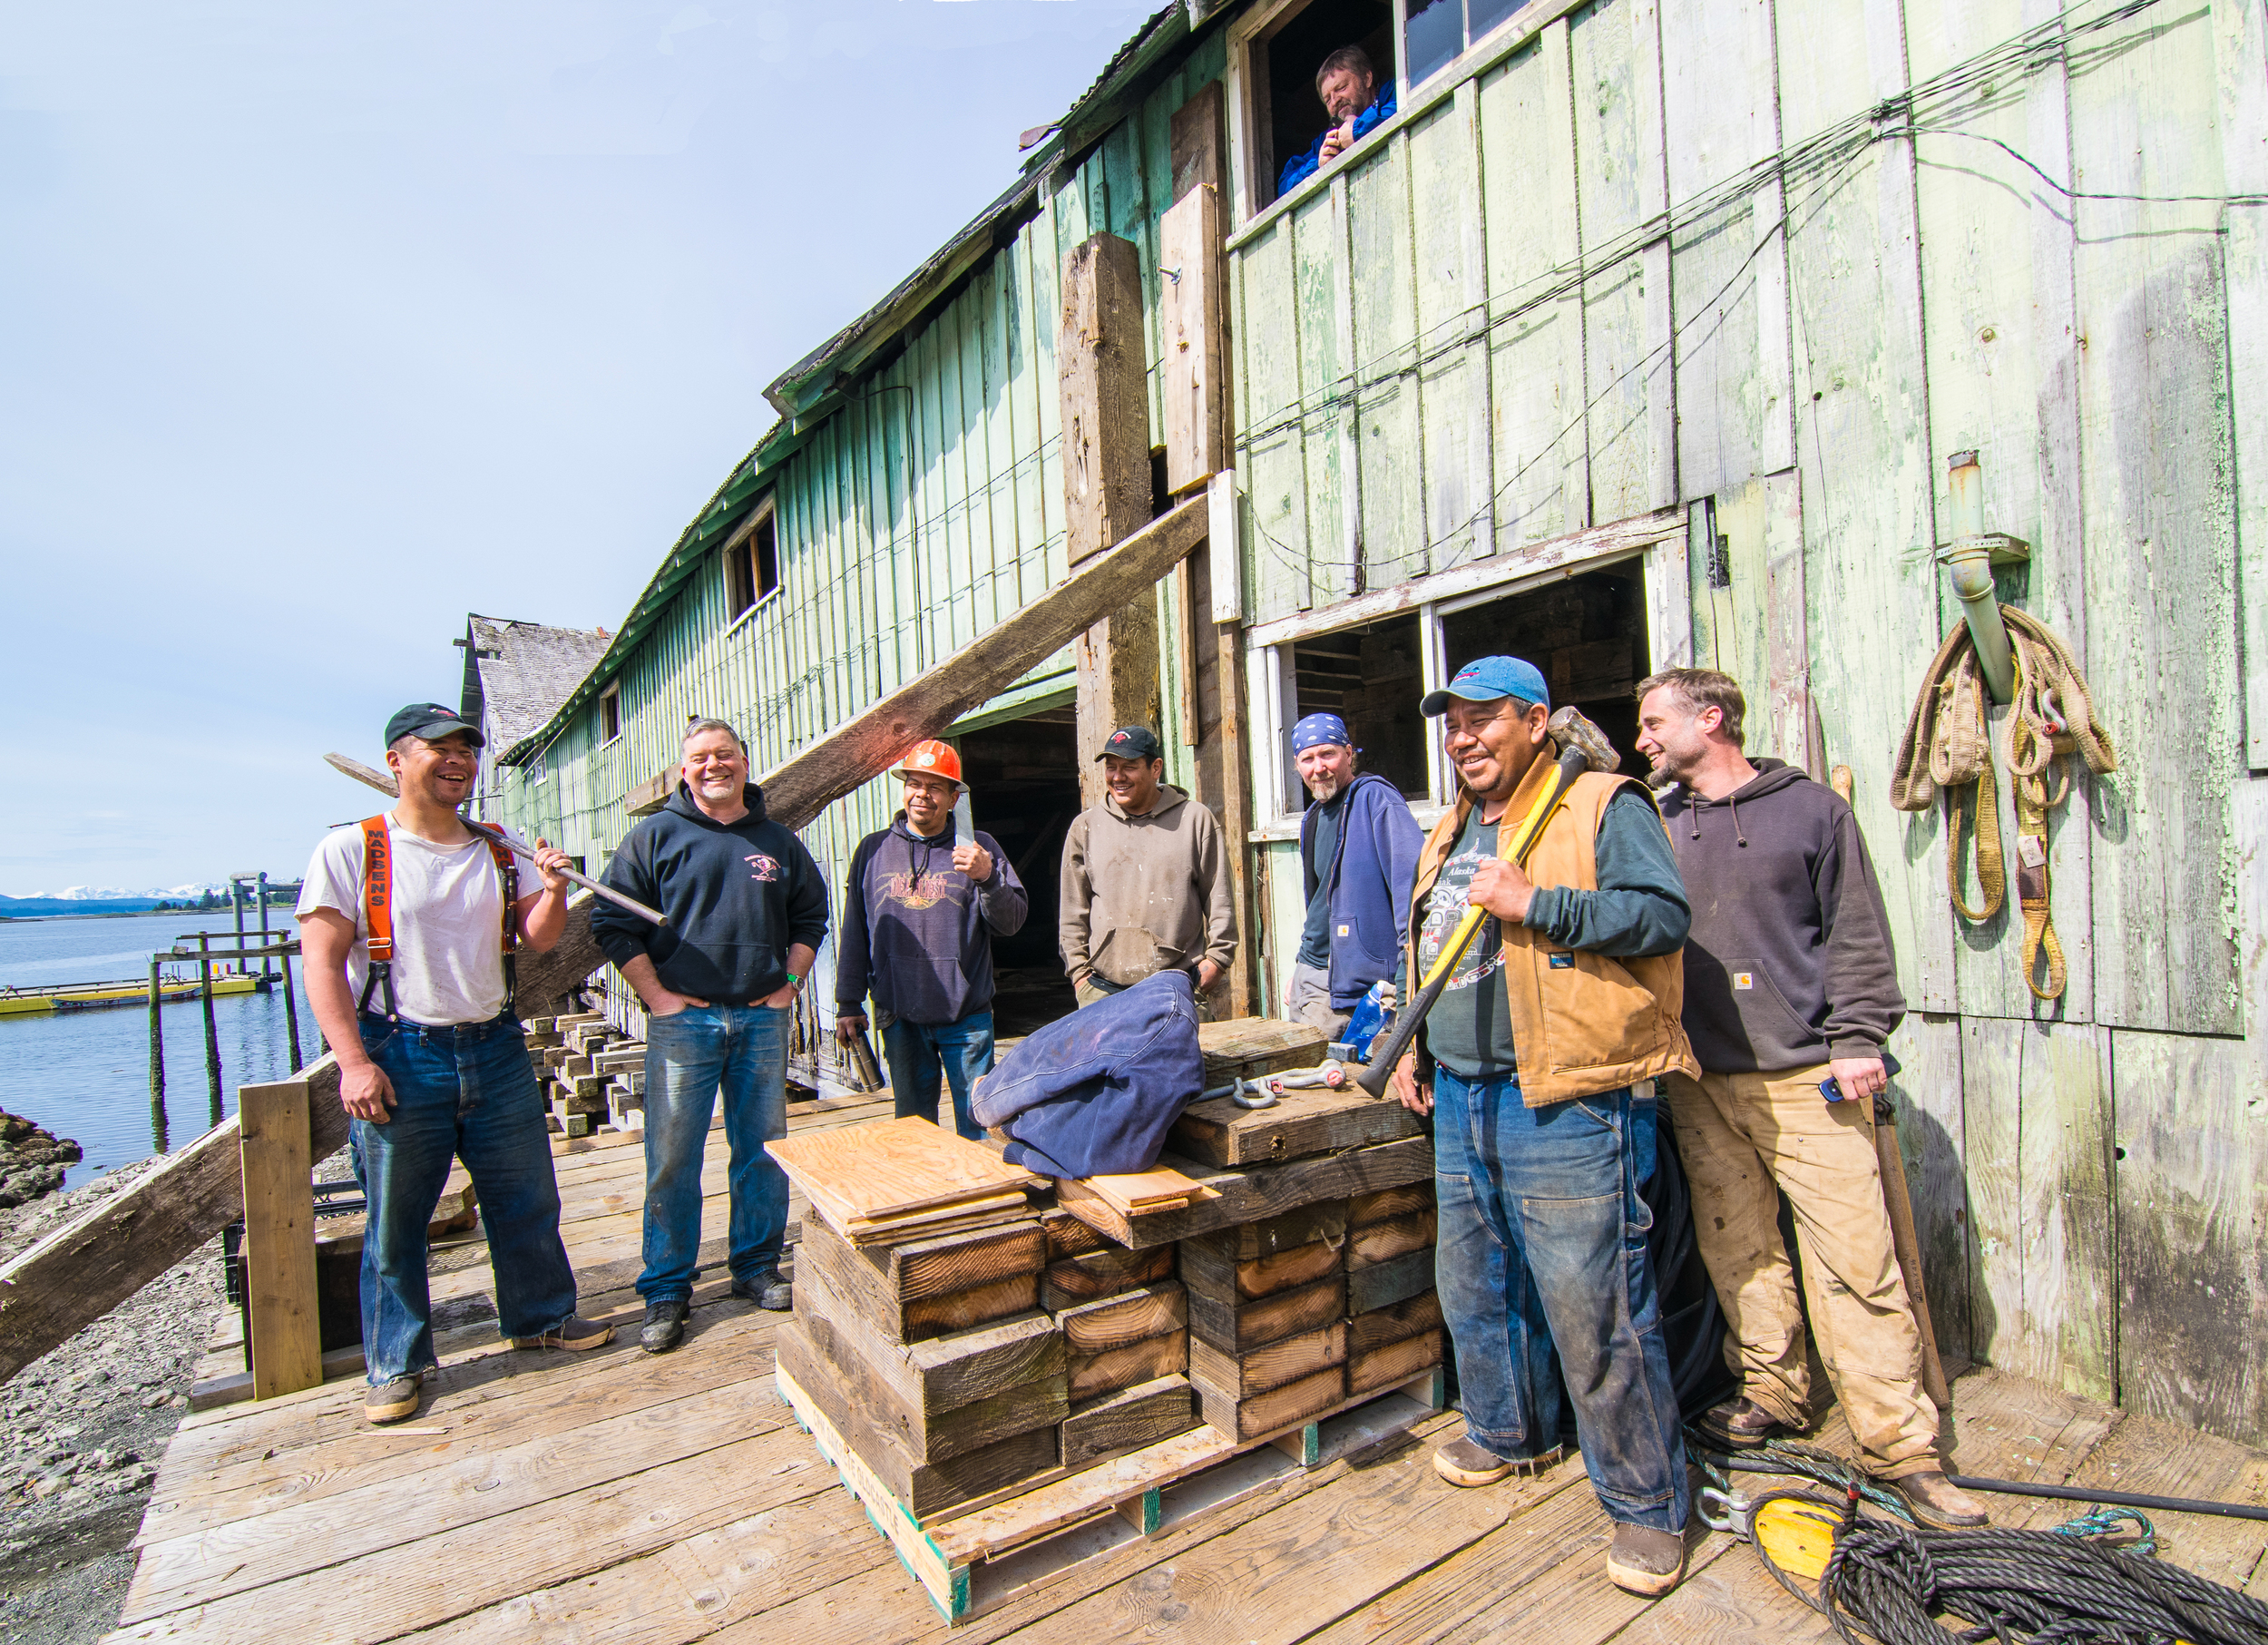 From a window in Kake's Historic Cannery, Gary Williams overlooks Greg Harrison and his construction crew. This hardworking team is inventive, fearless and includes five Kake locals (including Williams).